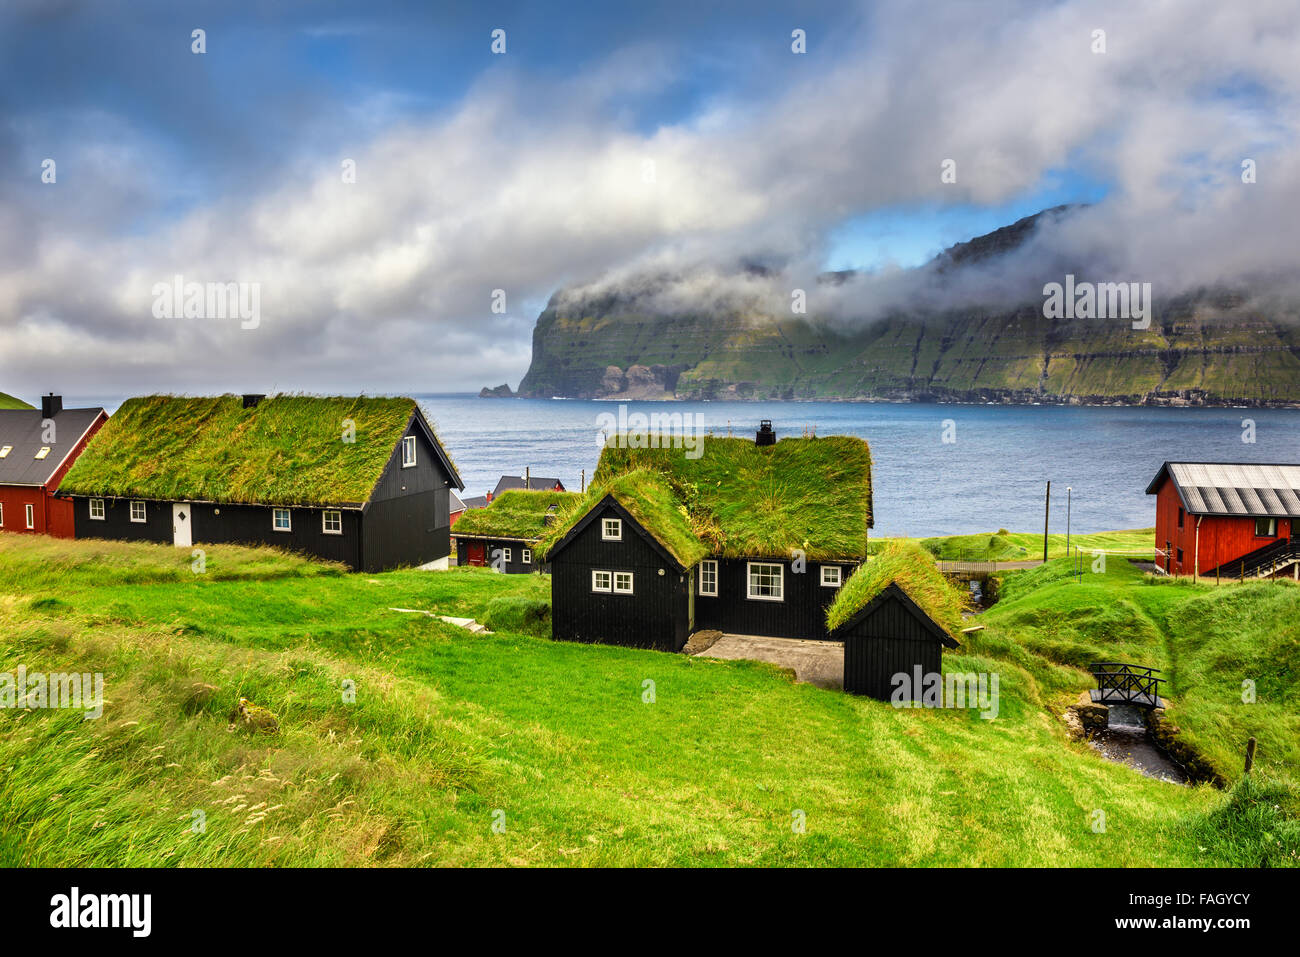 Village Of Mikladalur Located On The Island Of Kalsoy Faroe Islands